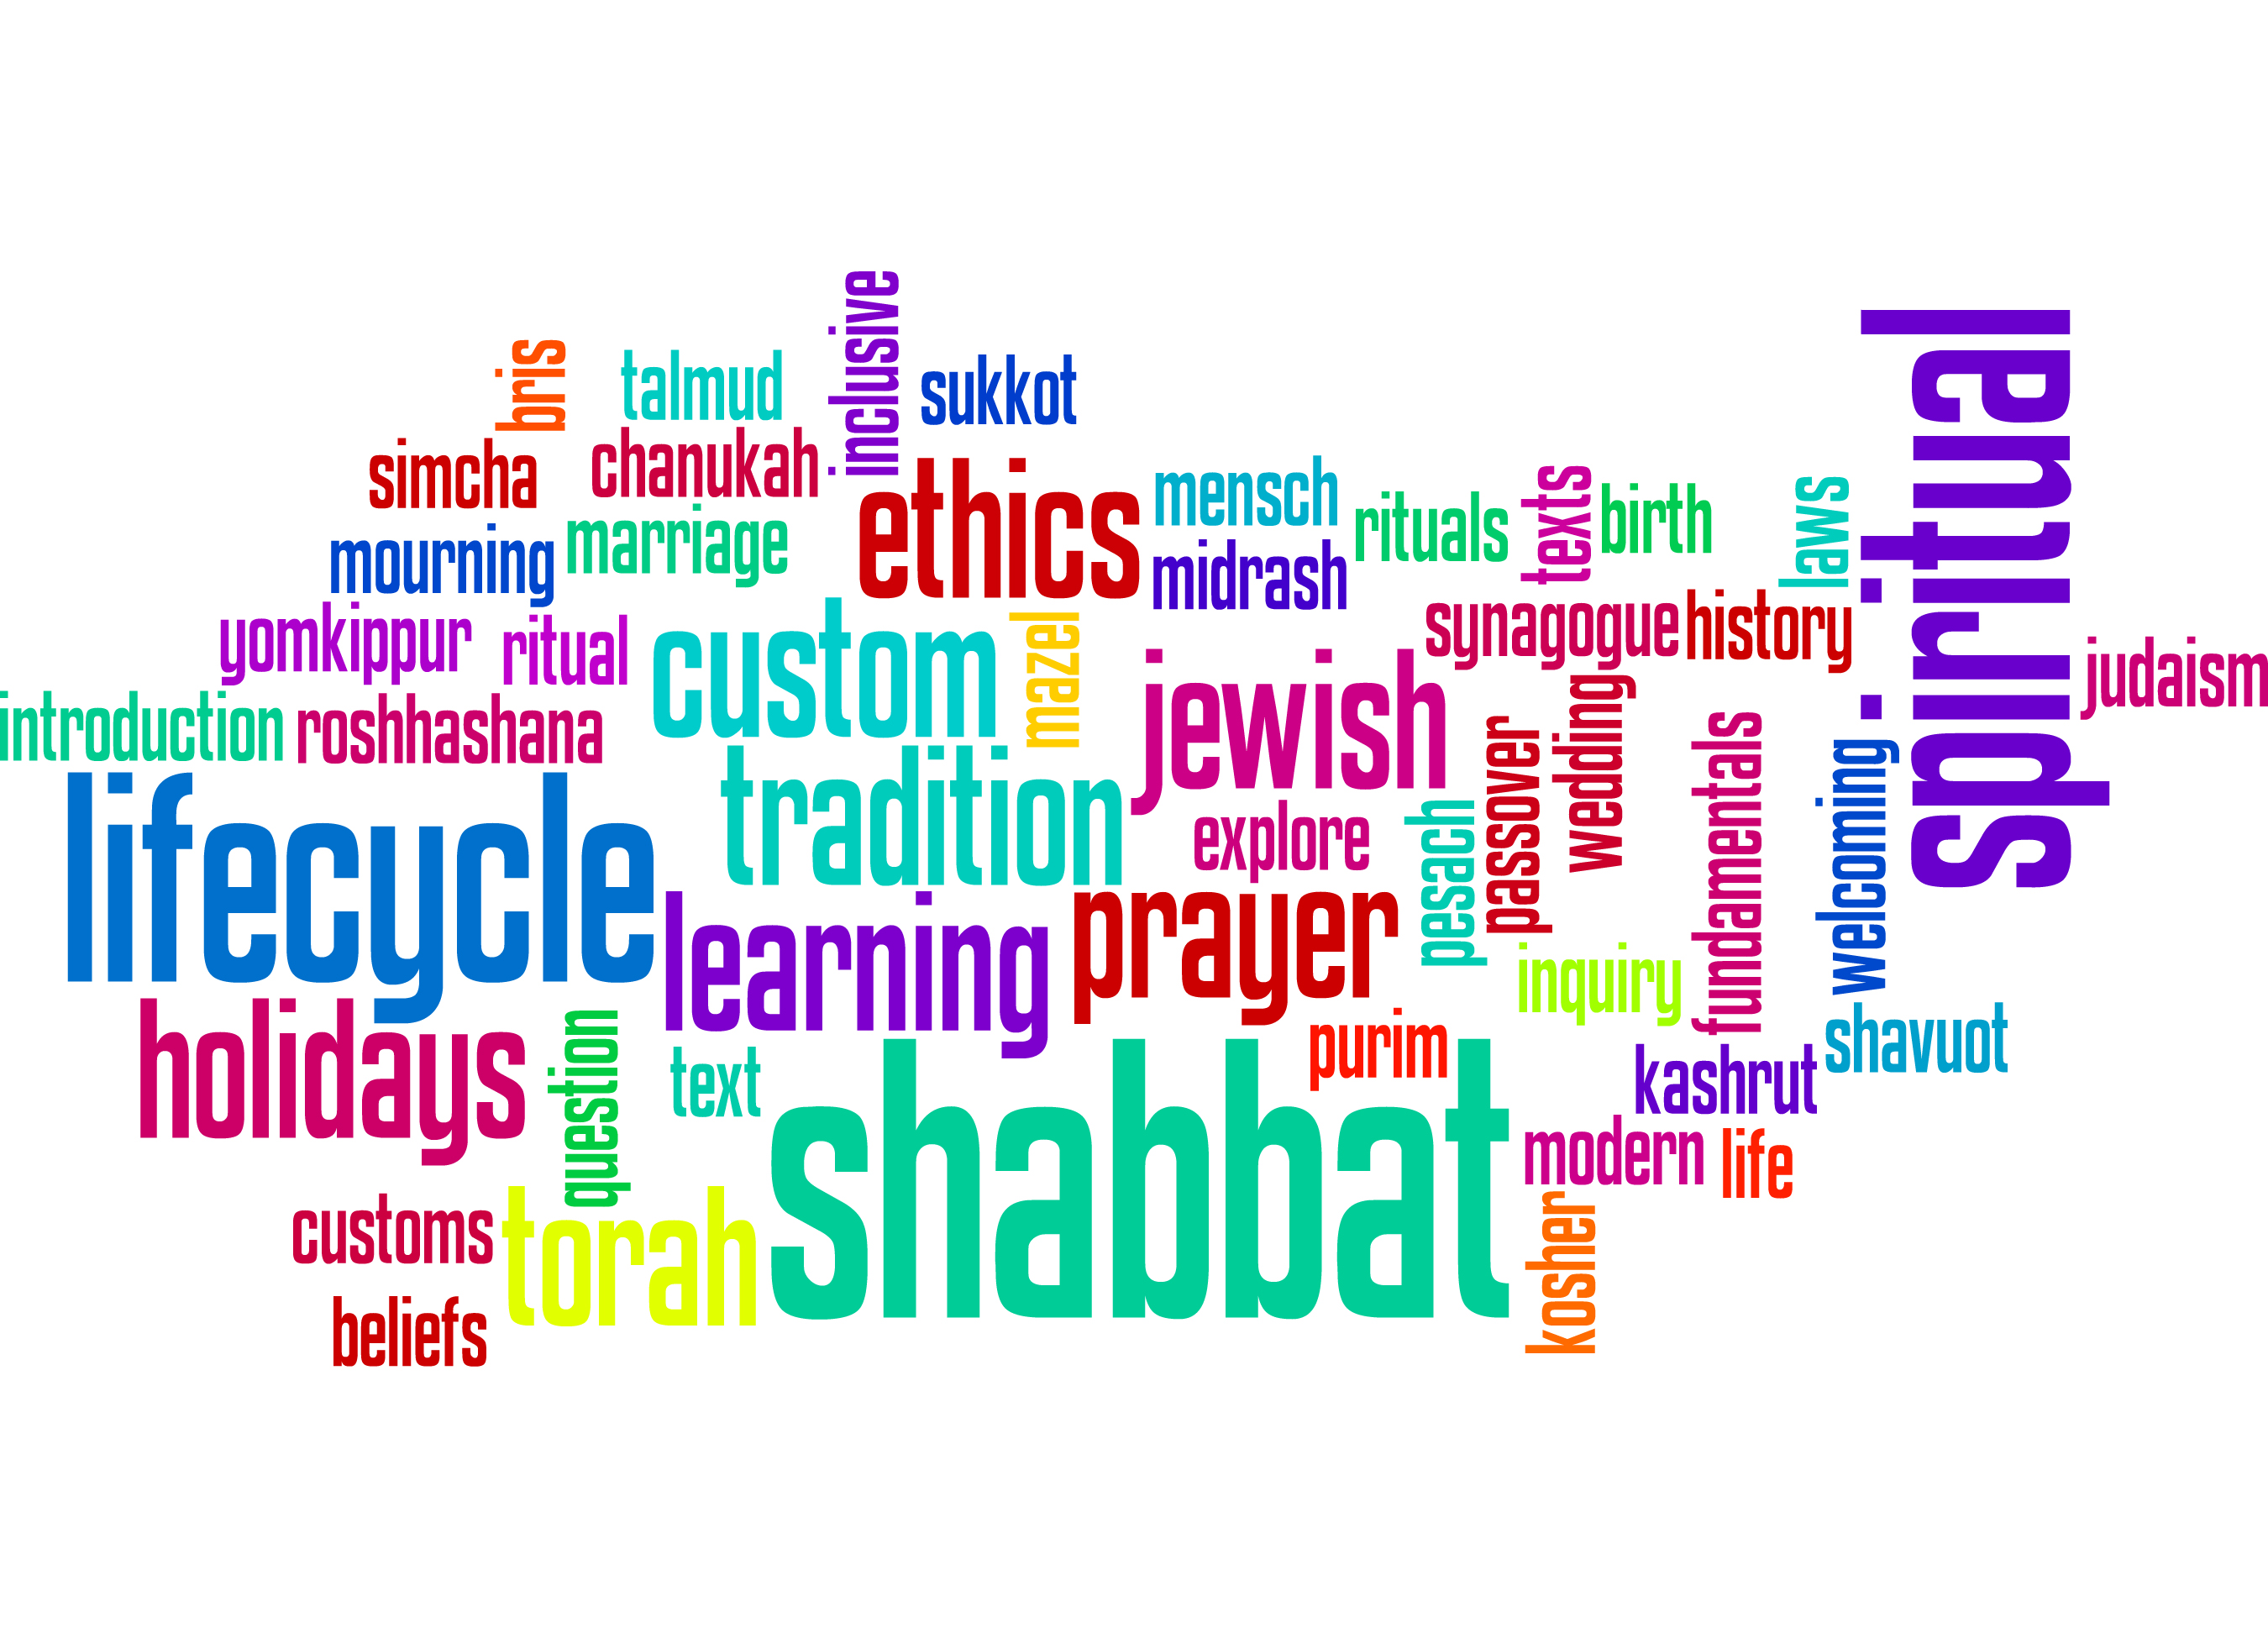 intro to judaism